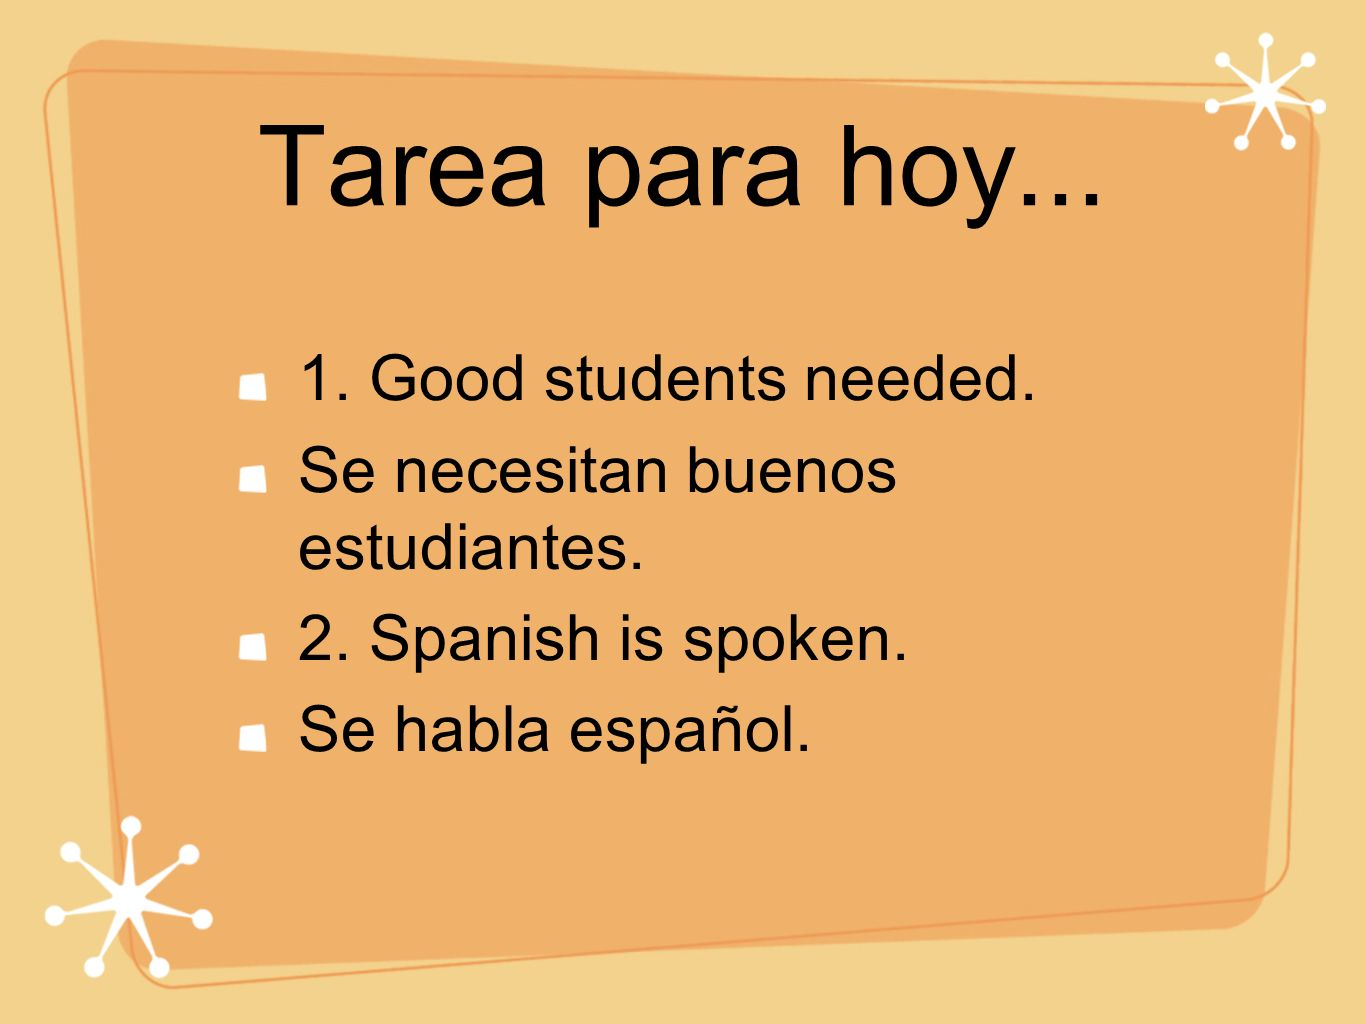 Tarea para hoy... 1. Good students needed.